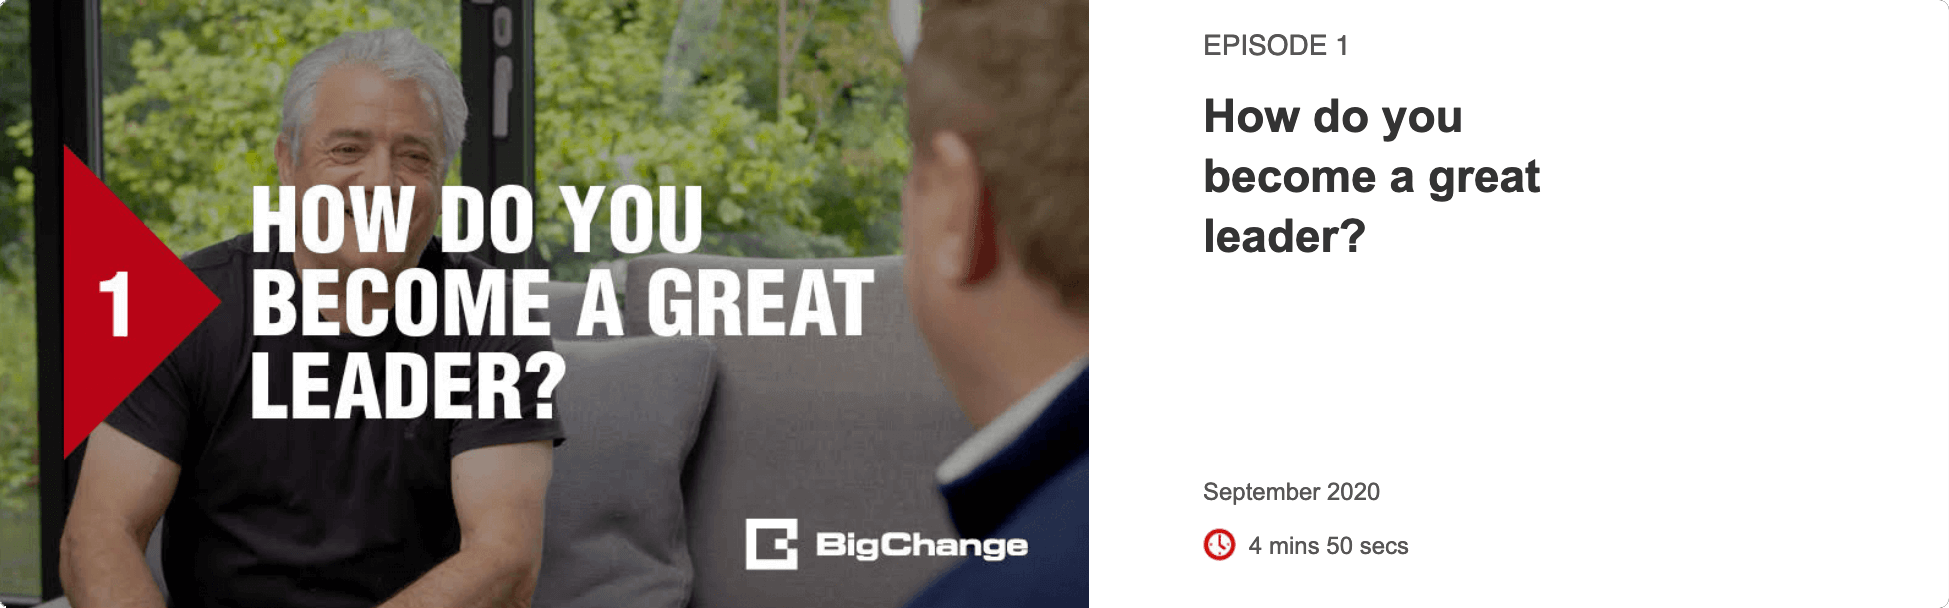 Episode 1 - How do you become a great leader?